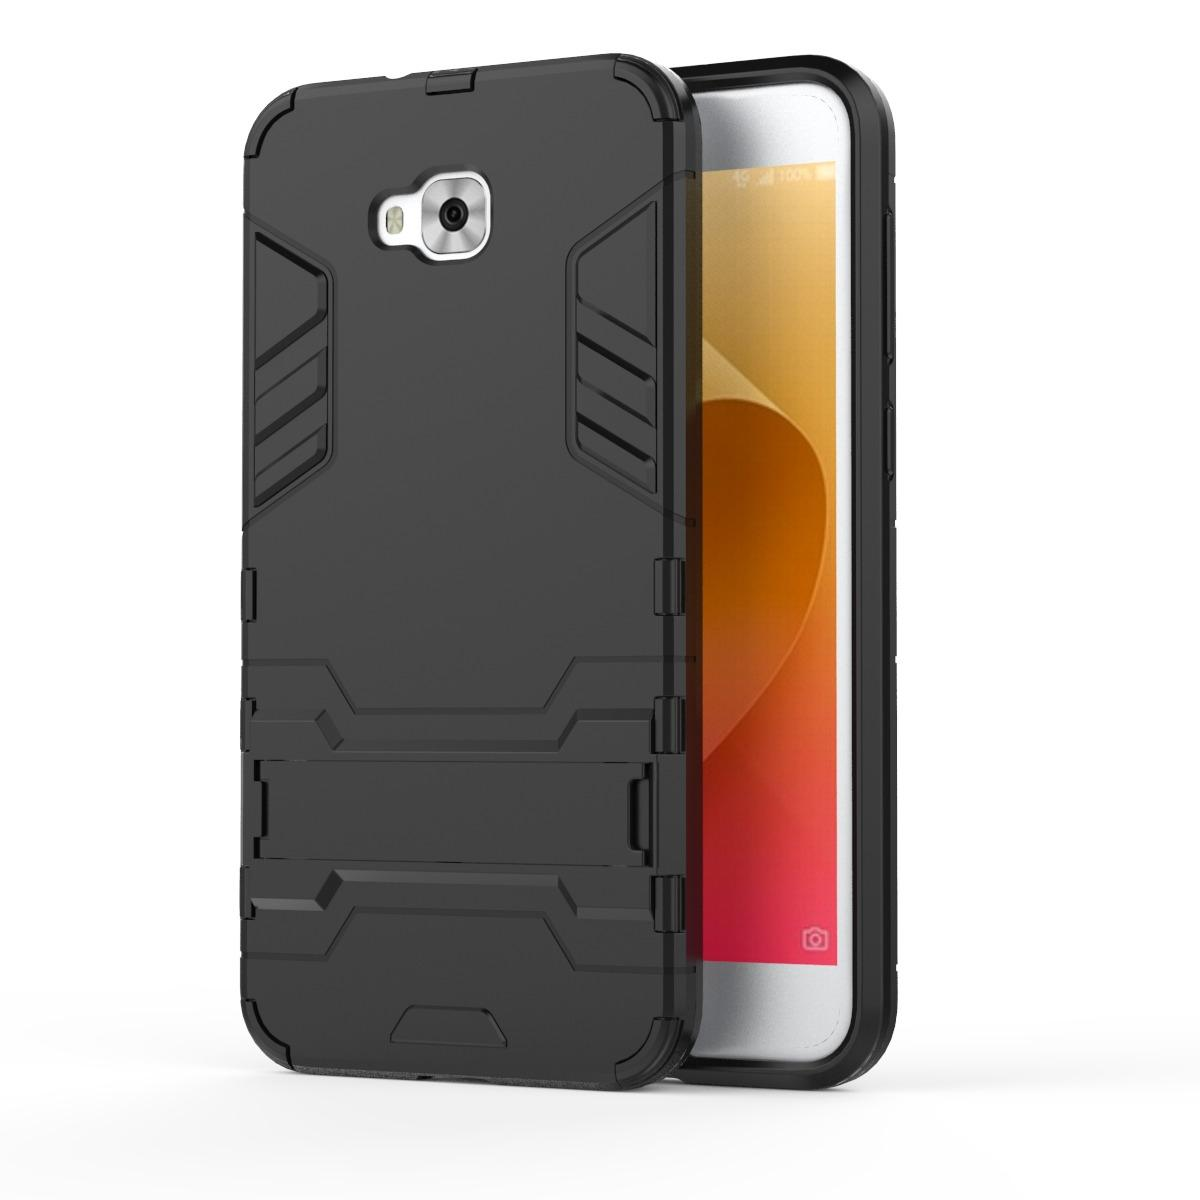 Accessories HP Transformer Rugged Kickstand Slim Armor Hardcase for Asus Zenfone 4 Selfie 5.5 inch ZD553KL